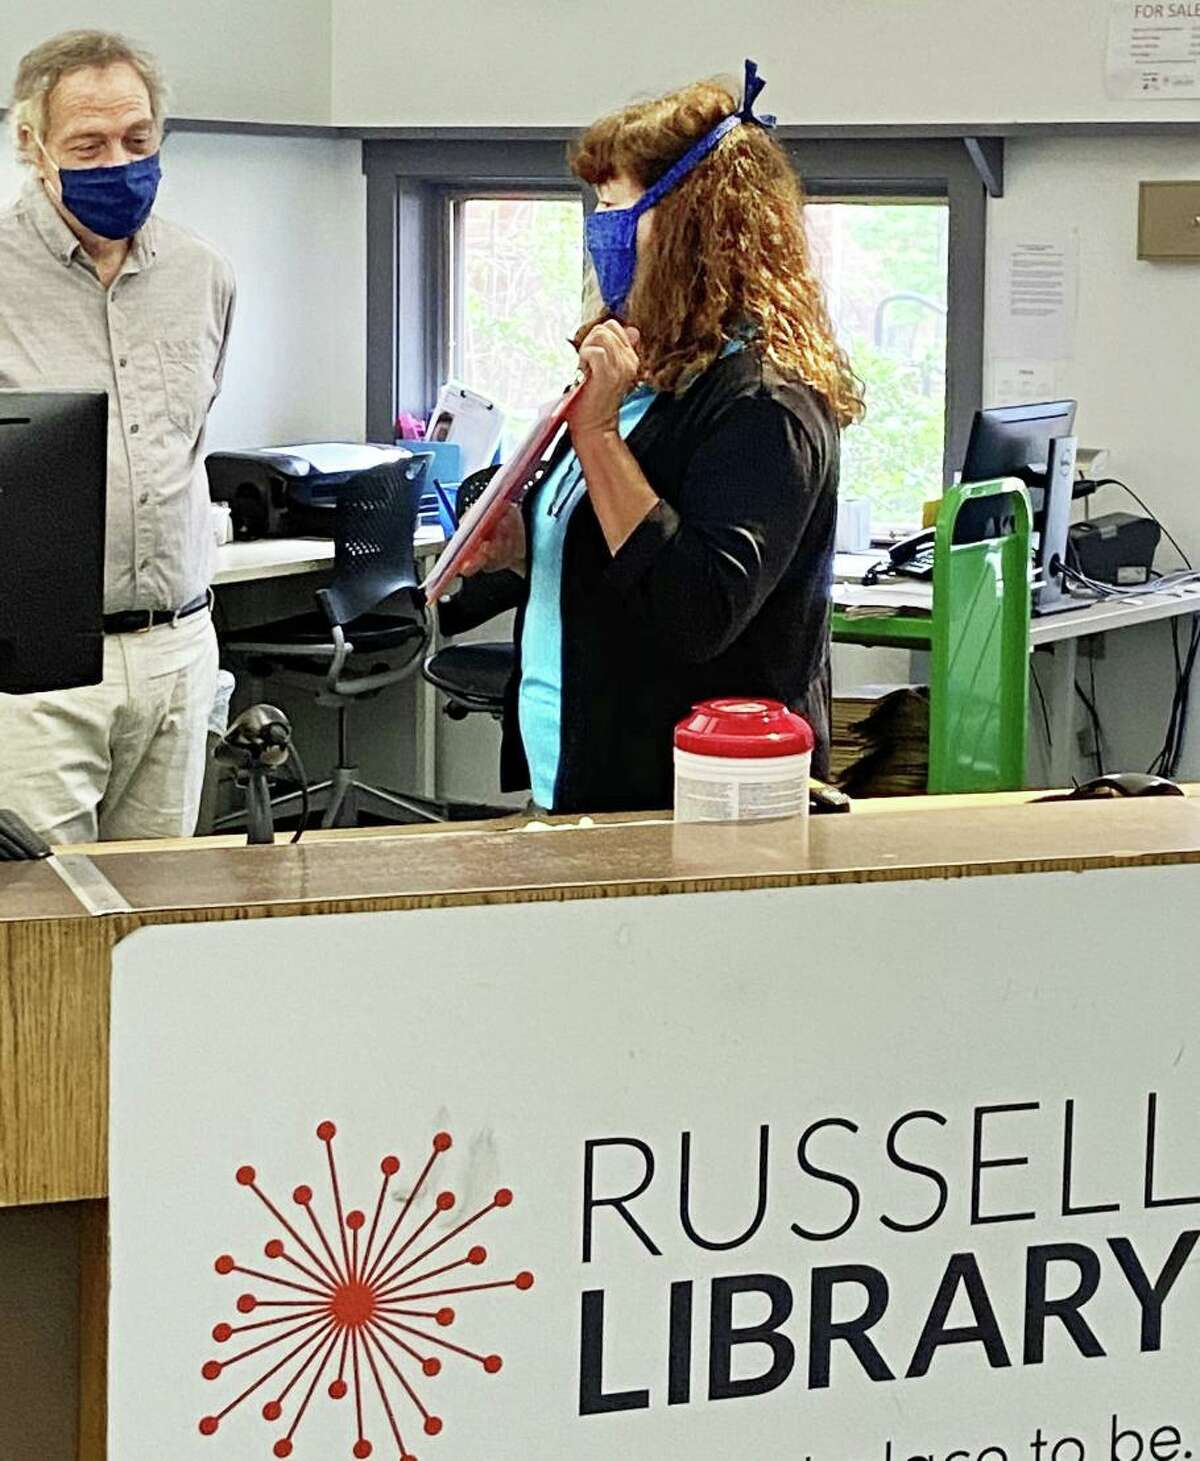 Russell Library staff are hard at work behind the scenes at the 123 Broad St., Middletown, facility, readying for the return of patrons at a yet-to-be-determined date during the coronavirus pandemic. Here, employee Phil Delegan and Assistant Director for Public Services Mary Dattilo get up to speed Tuesday on how curbside pickup of materials will work.